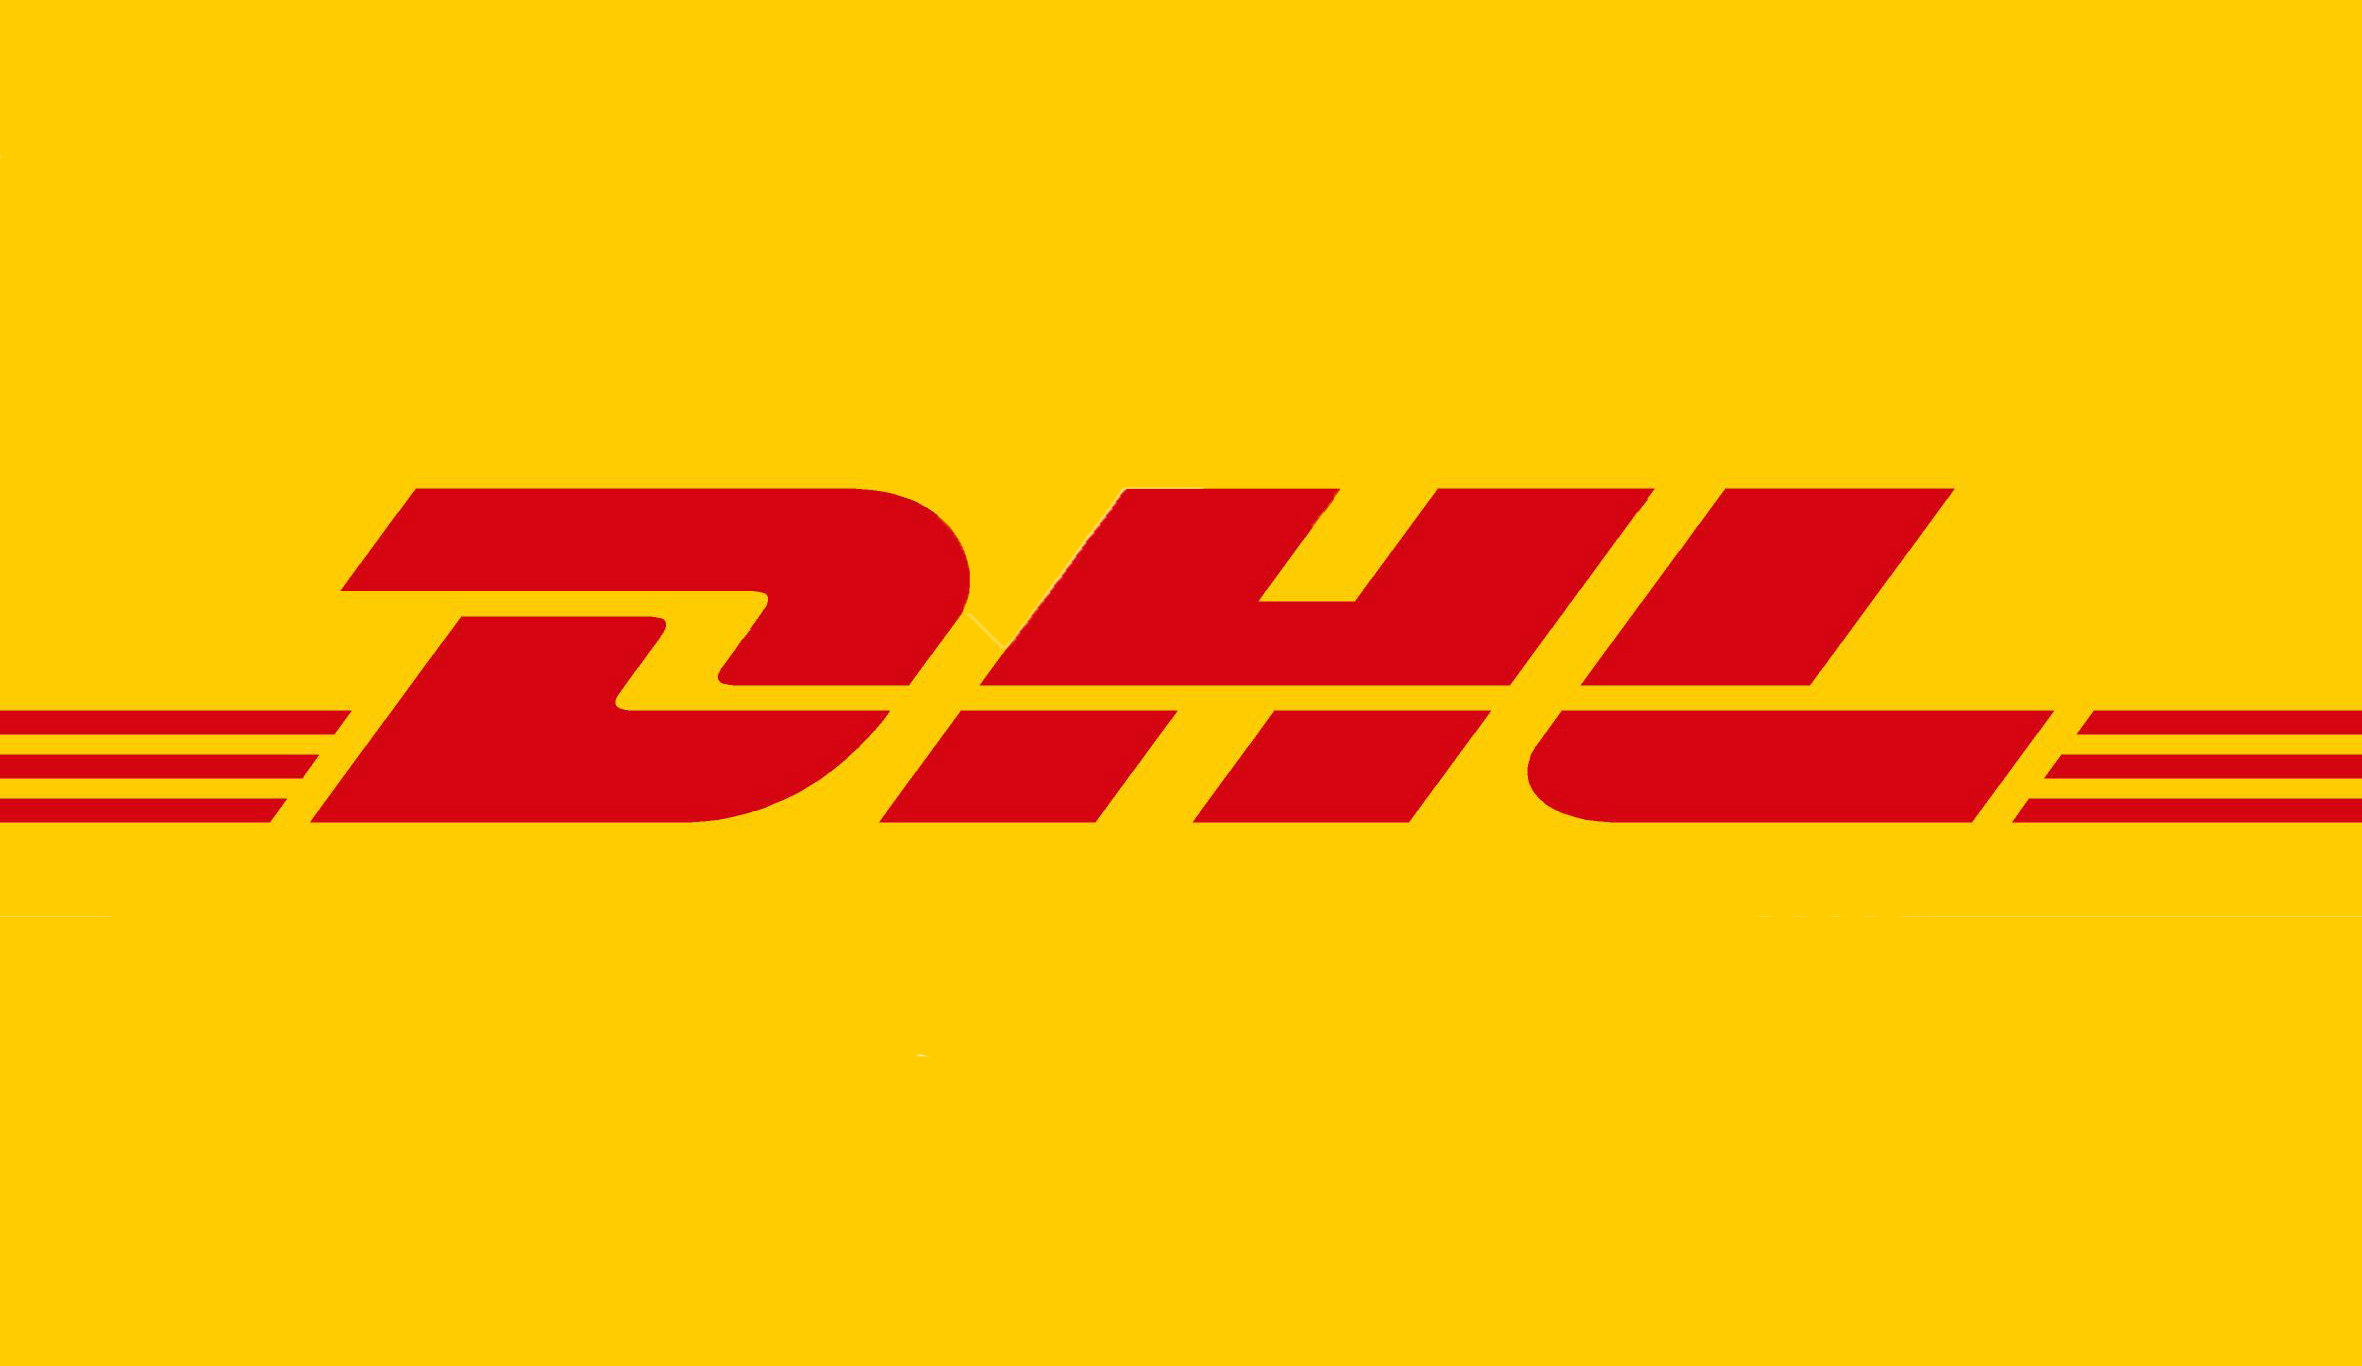 Download Wallpaper Dhl   Dhl Courier Service 510141   HD 2362x1366